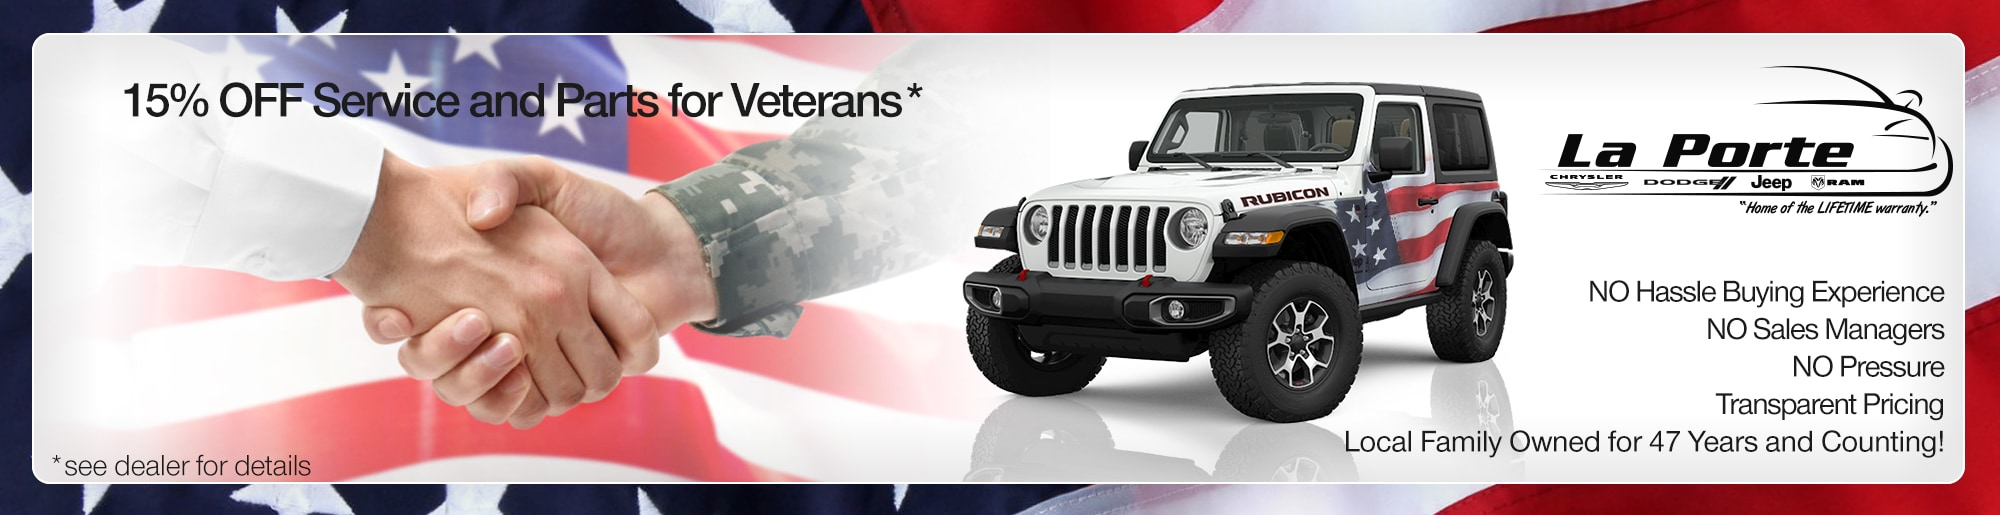 15% off service and parts for veterans